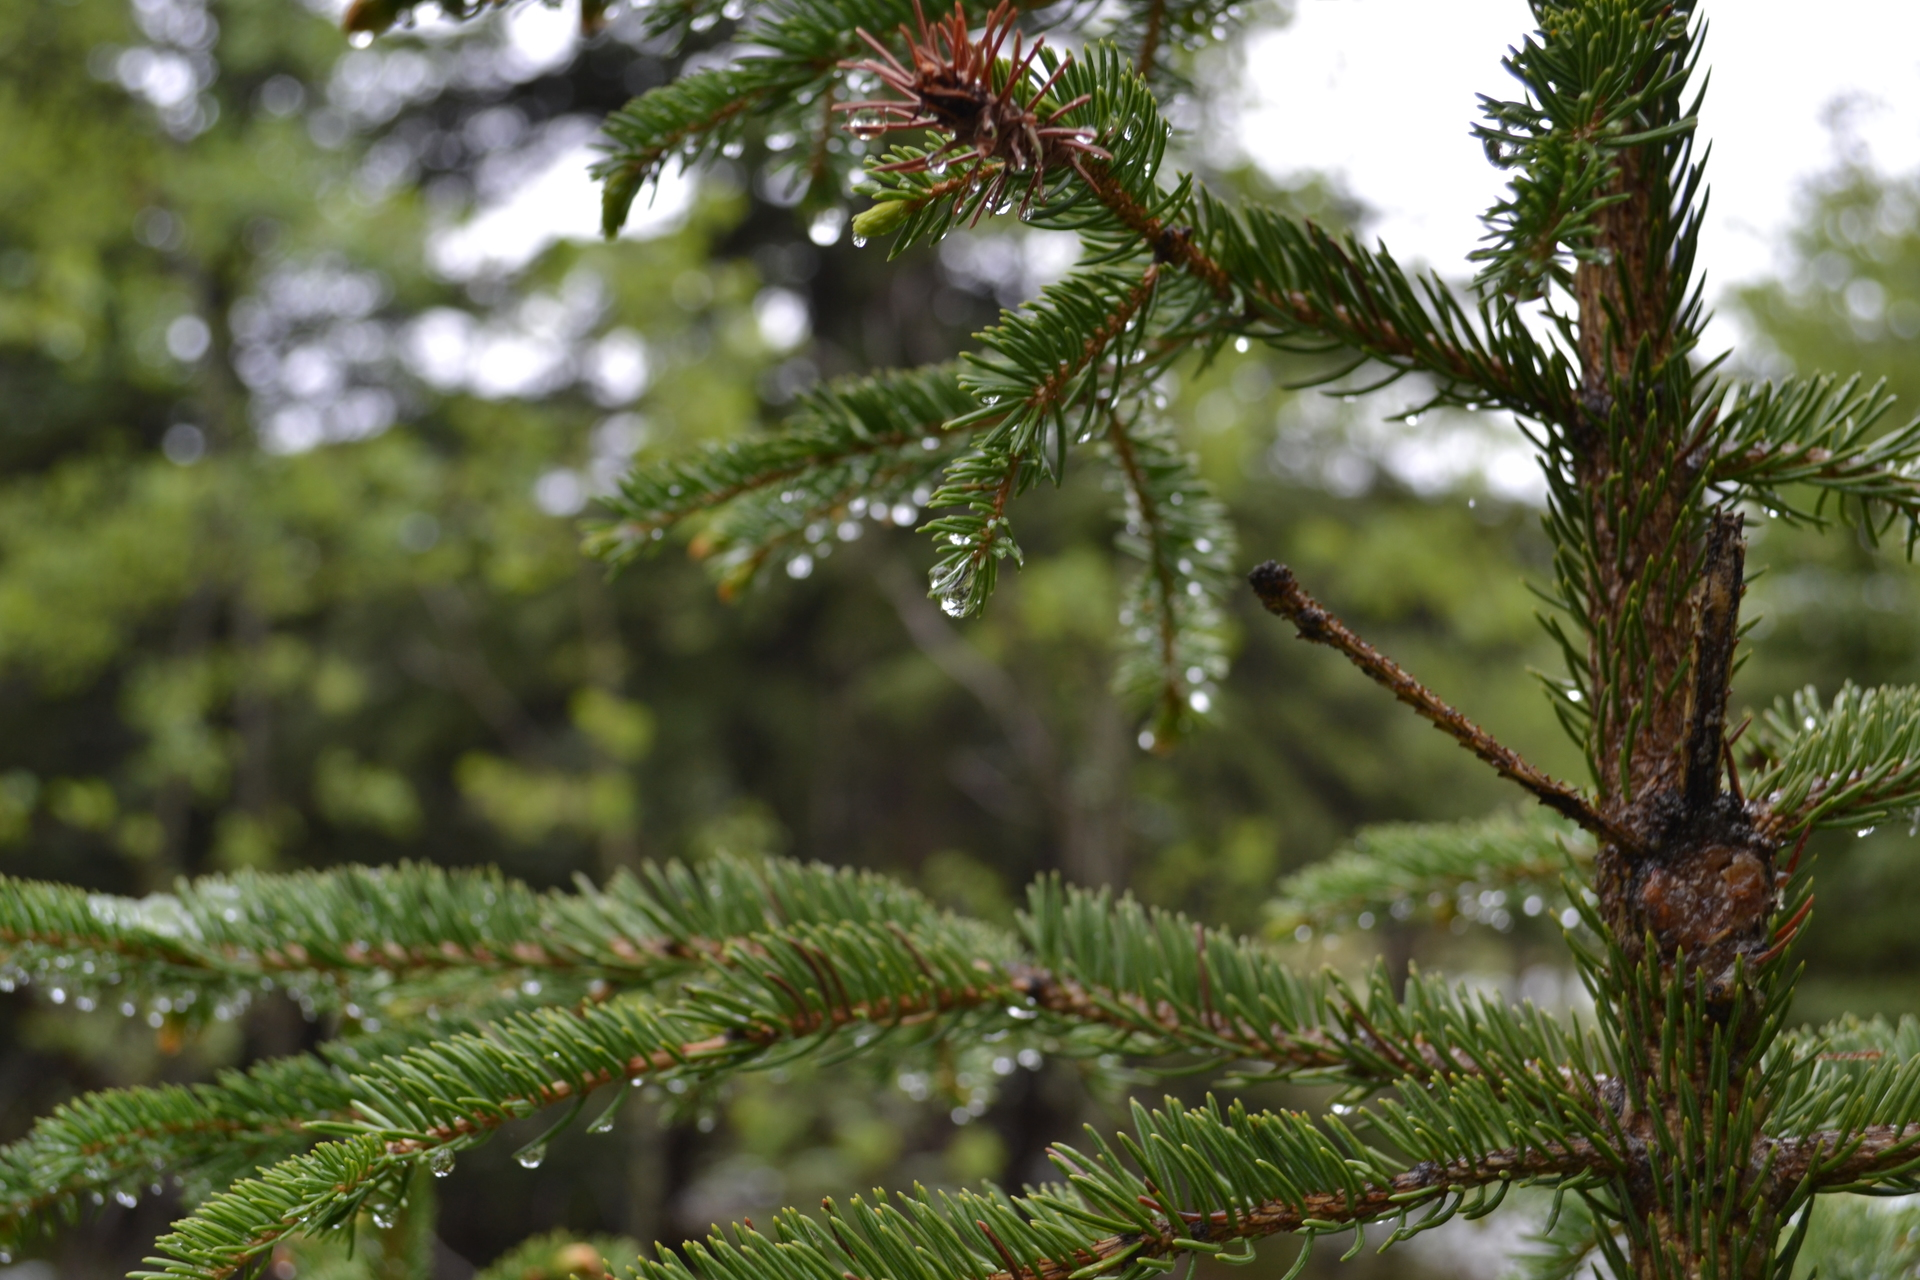 Water droplets on a pine tree branch bough in late spring in a  Rocky Mountains forest